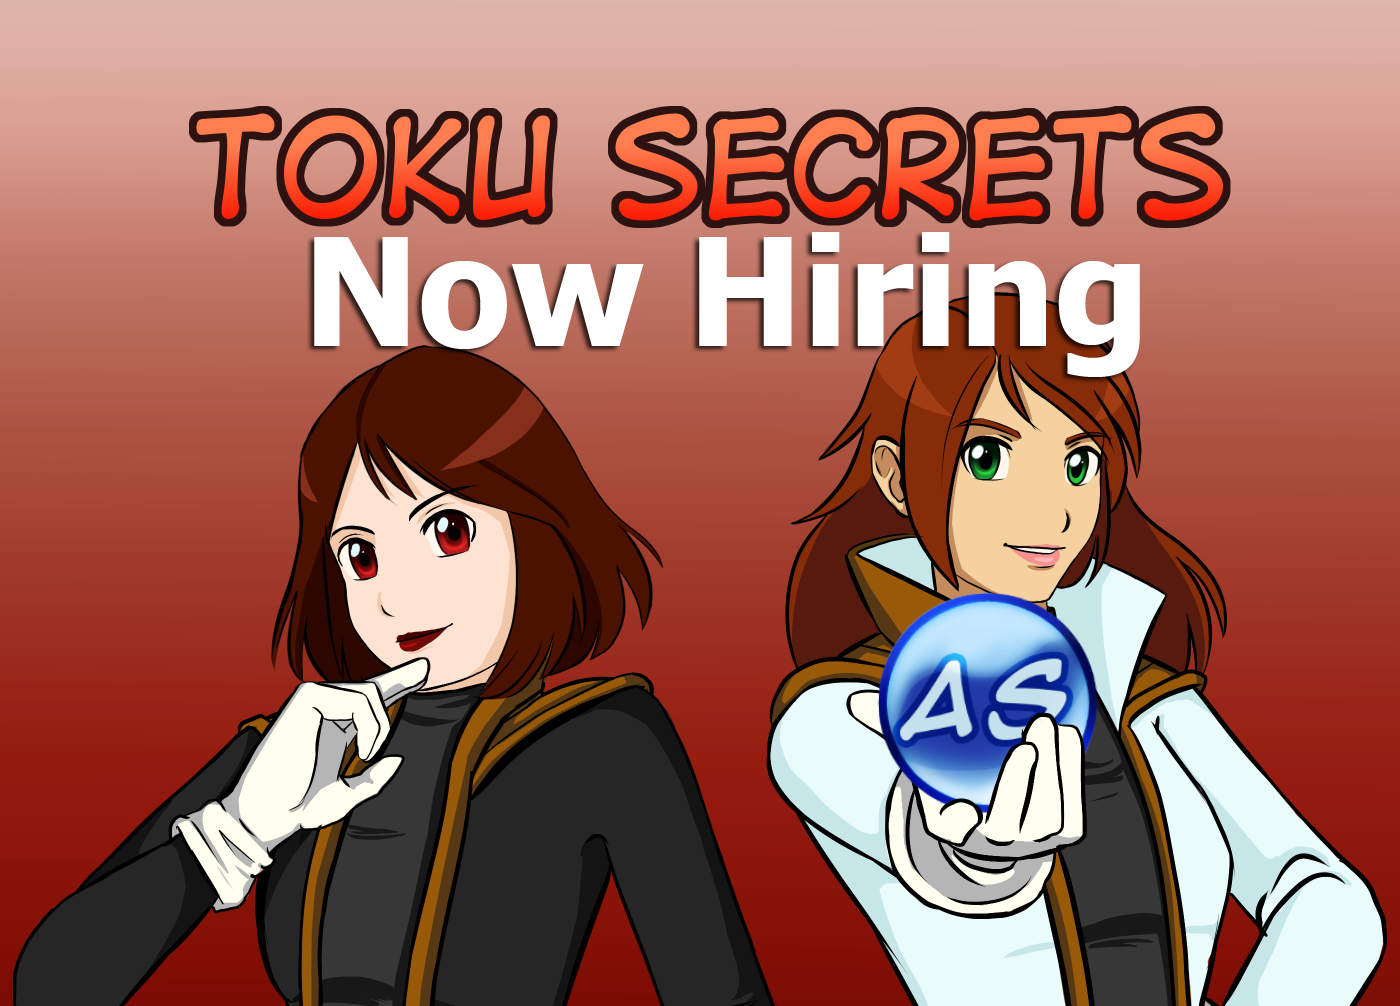 Toku Secrets: Now Hiring